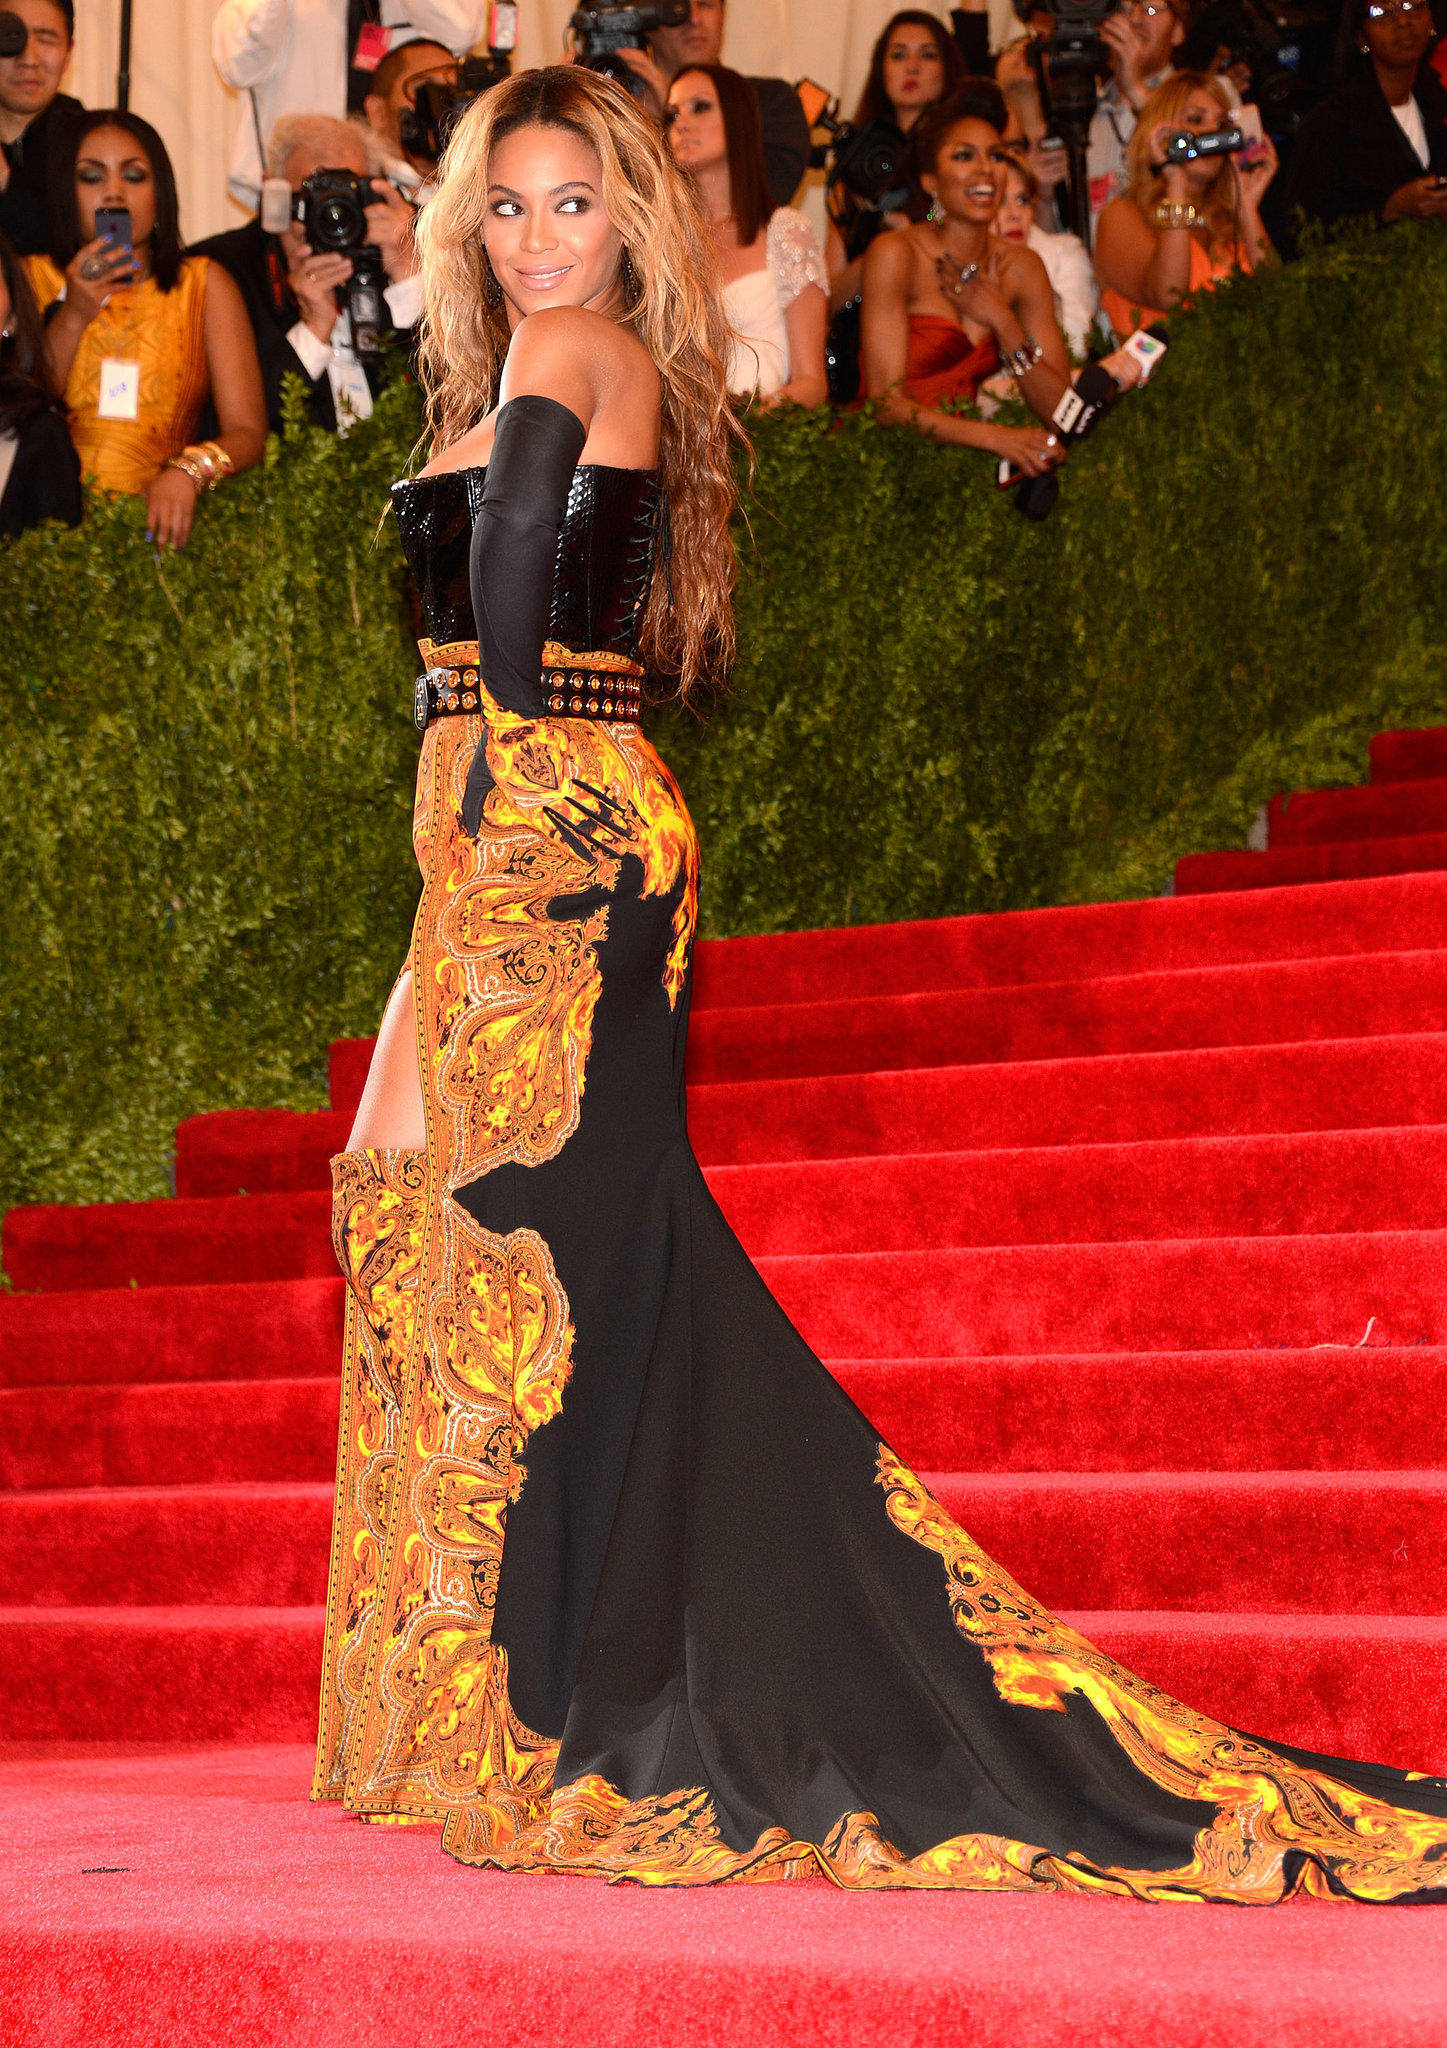 Beyoncé basically owned the red carpet at the Met Gala in May — she showed up in a gorgeous Givenchy gown for the event, for which she was an honorar